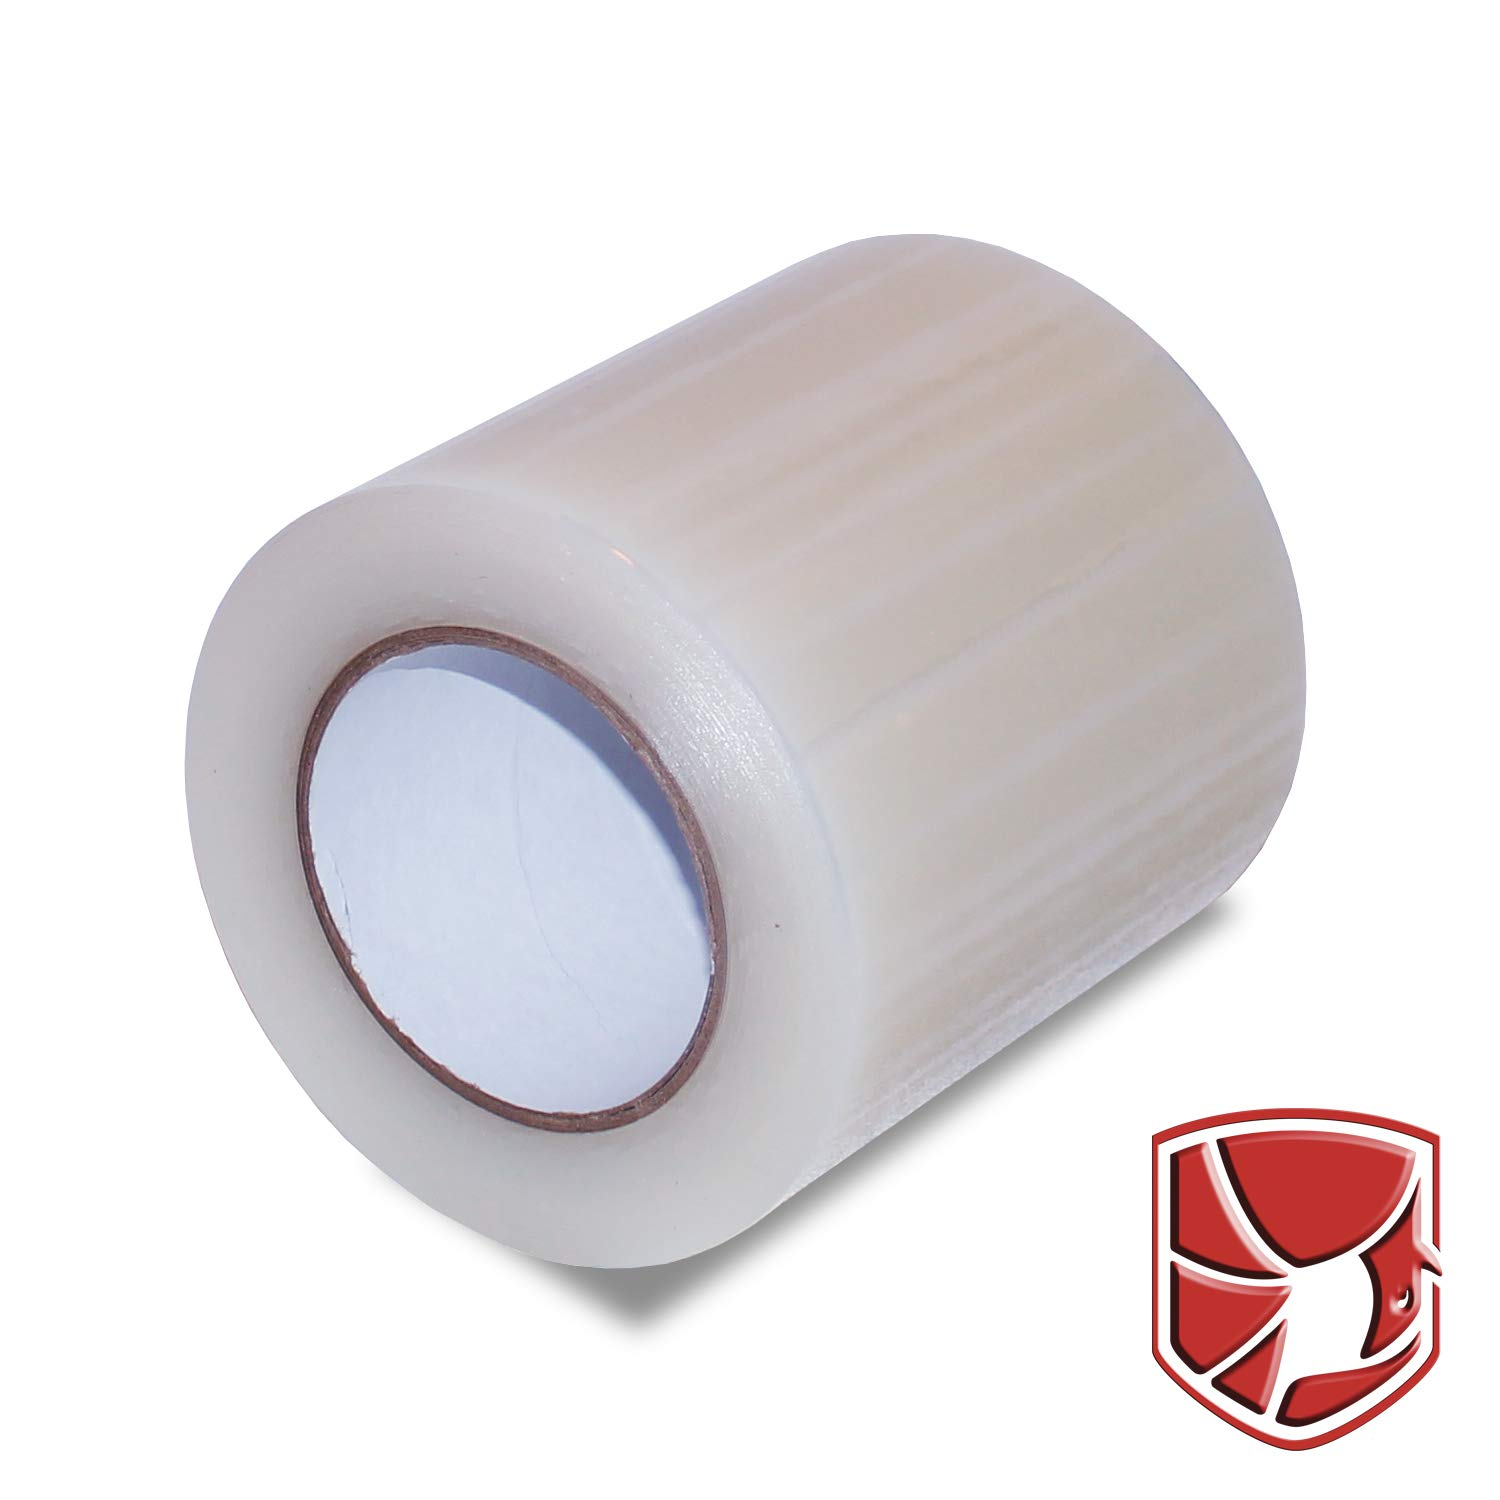 ArmorDillo Bruise Tape, Temporary Paint Protection Film for Cars, 6'' x 200ft Perfed Every 6''. Track Day Paint Protection. Paint Mask, Clear Adhesive Film for Auto by ArmorDillo (Image #2)